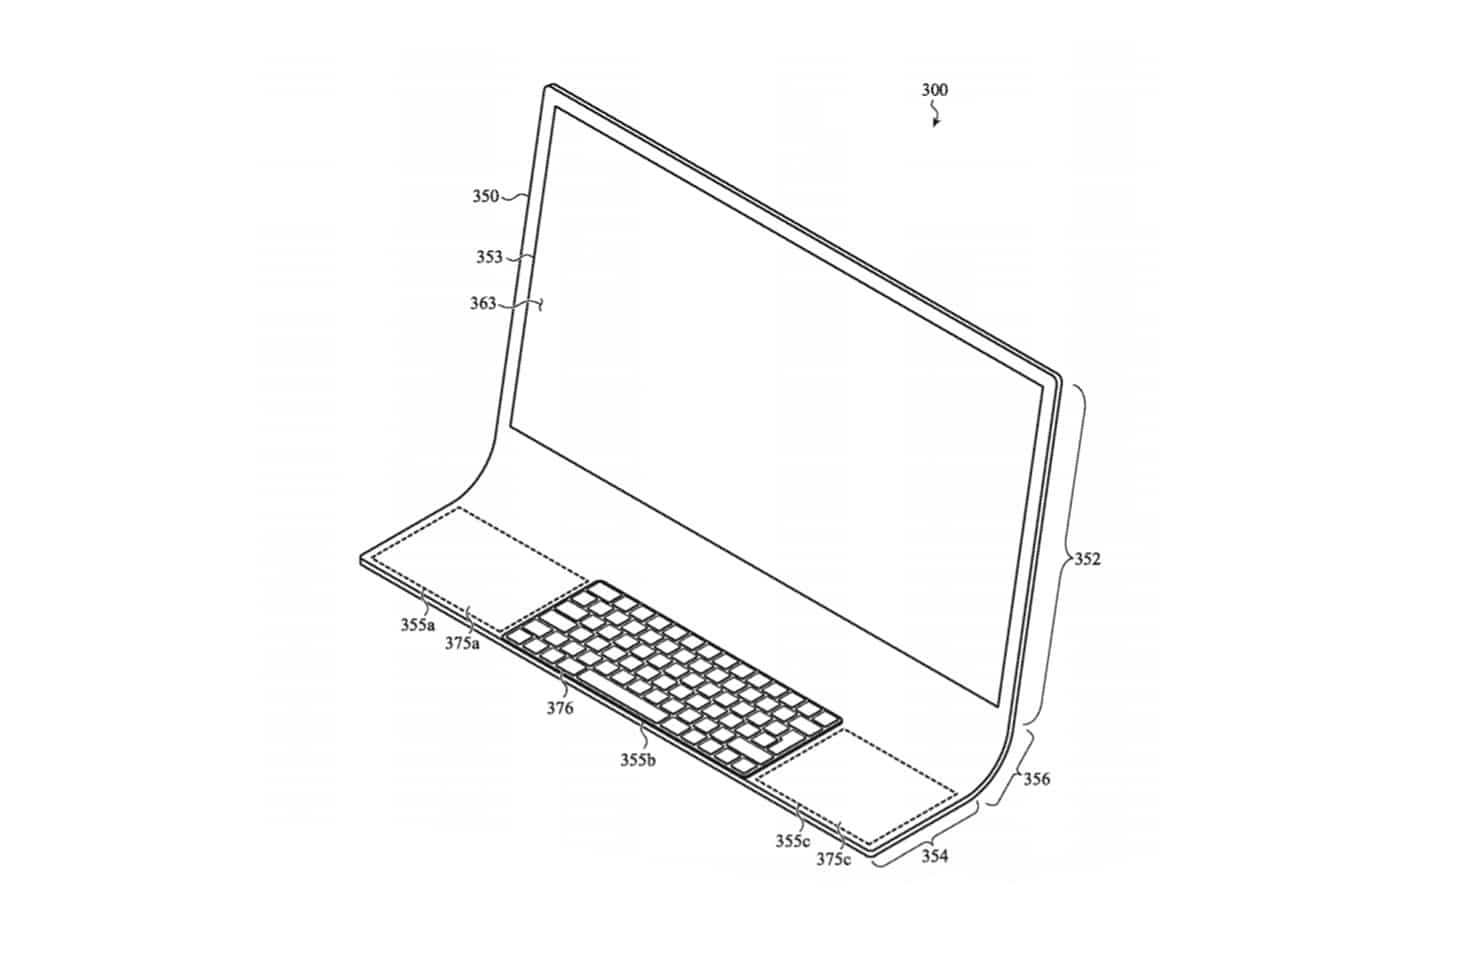 Apple patent reveals new iMac design with an unusual shape